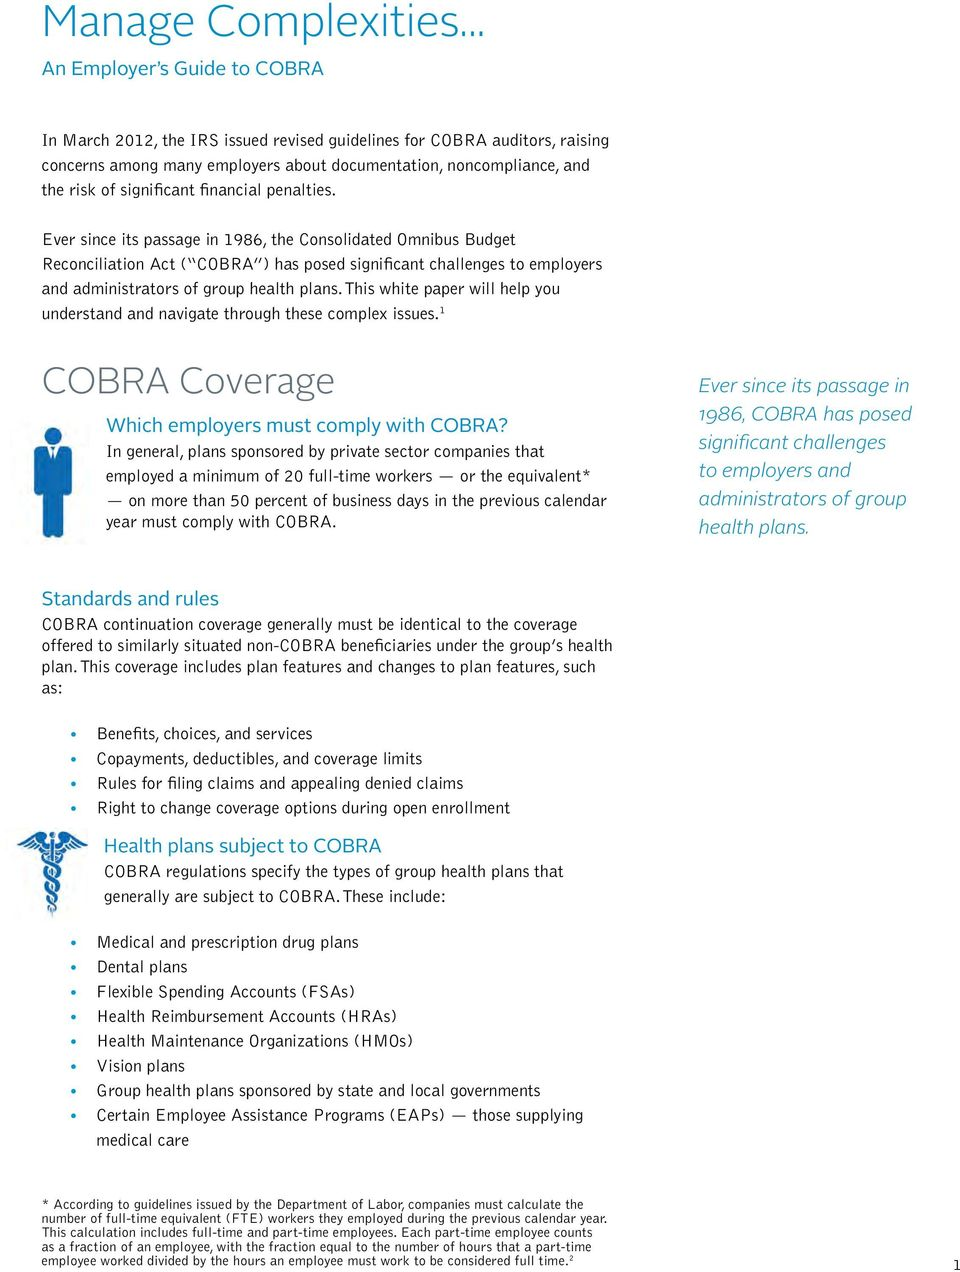 Ever since its passage in 1986, the Consolidated Omnibus Budget Reconciliation Act ( COBRA ) has posed significant challenges to employers and administrators of group health plans.